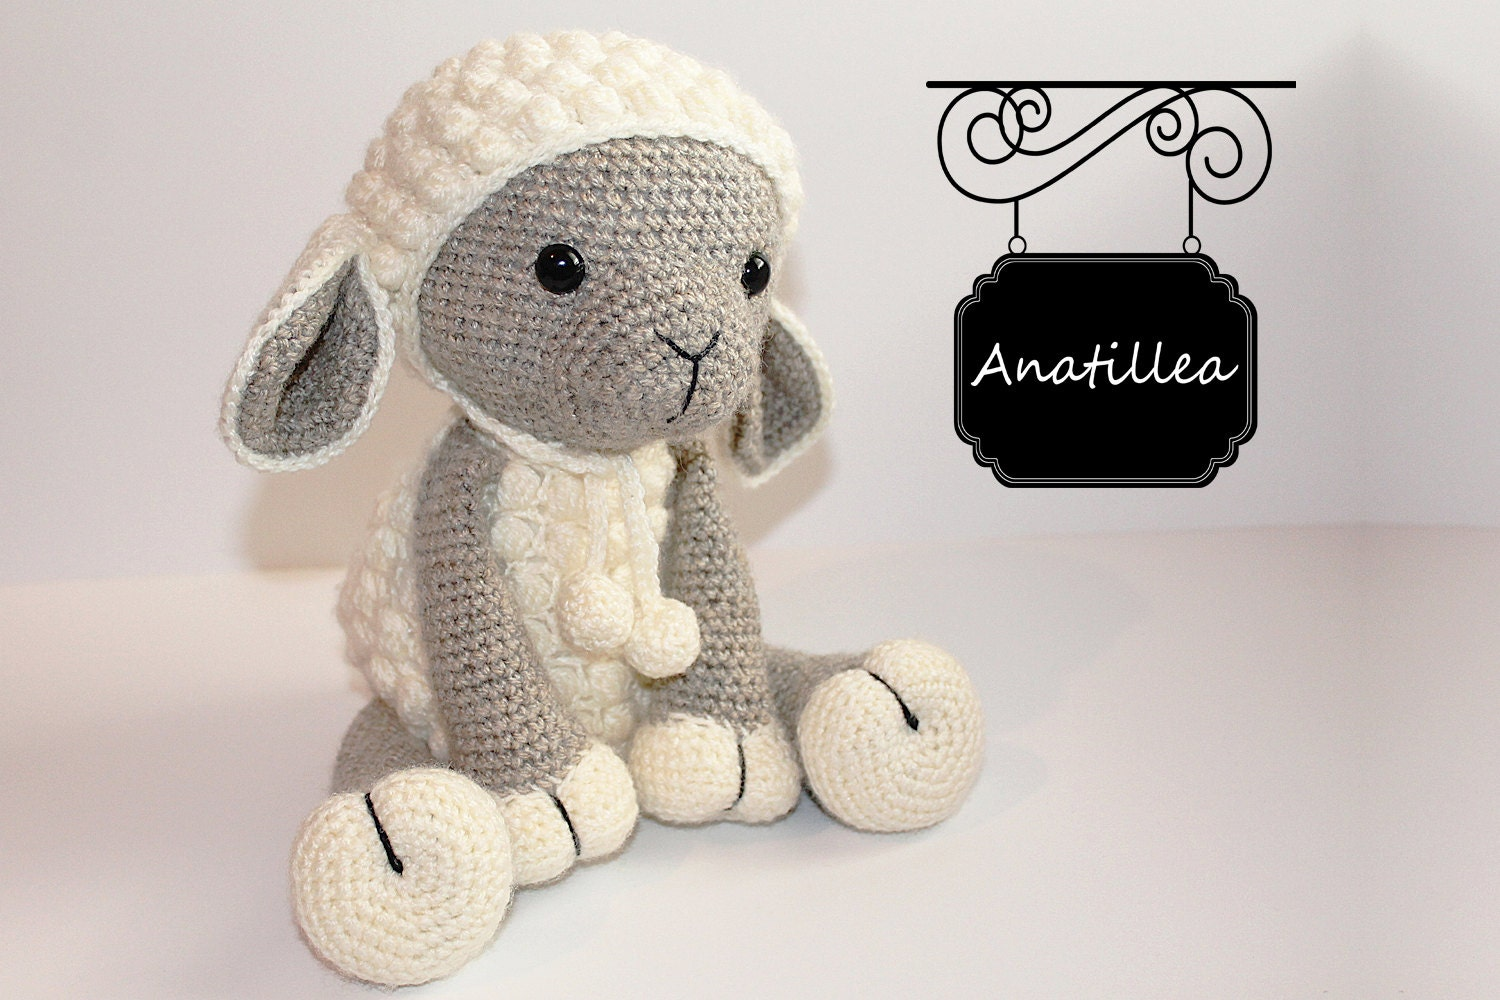 Magnificent Knitted Amigurumi Patterns Free Picture Collection ...